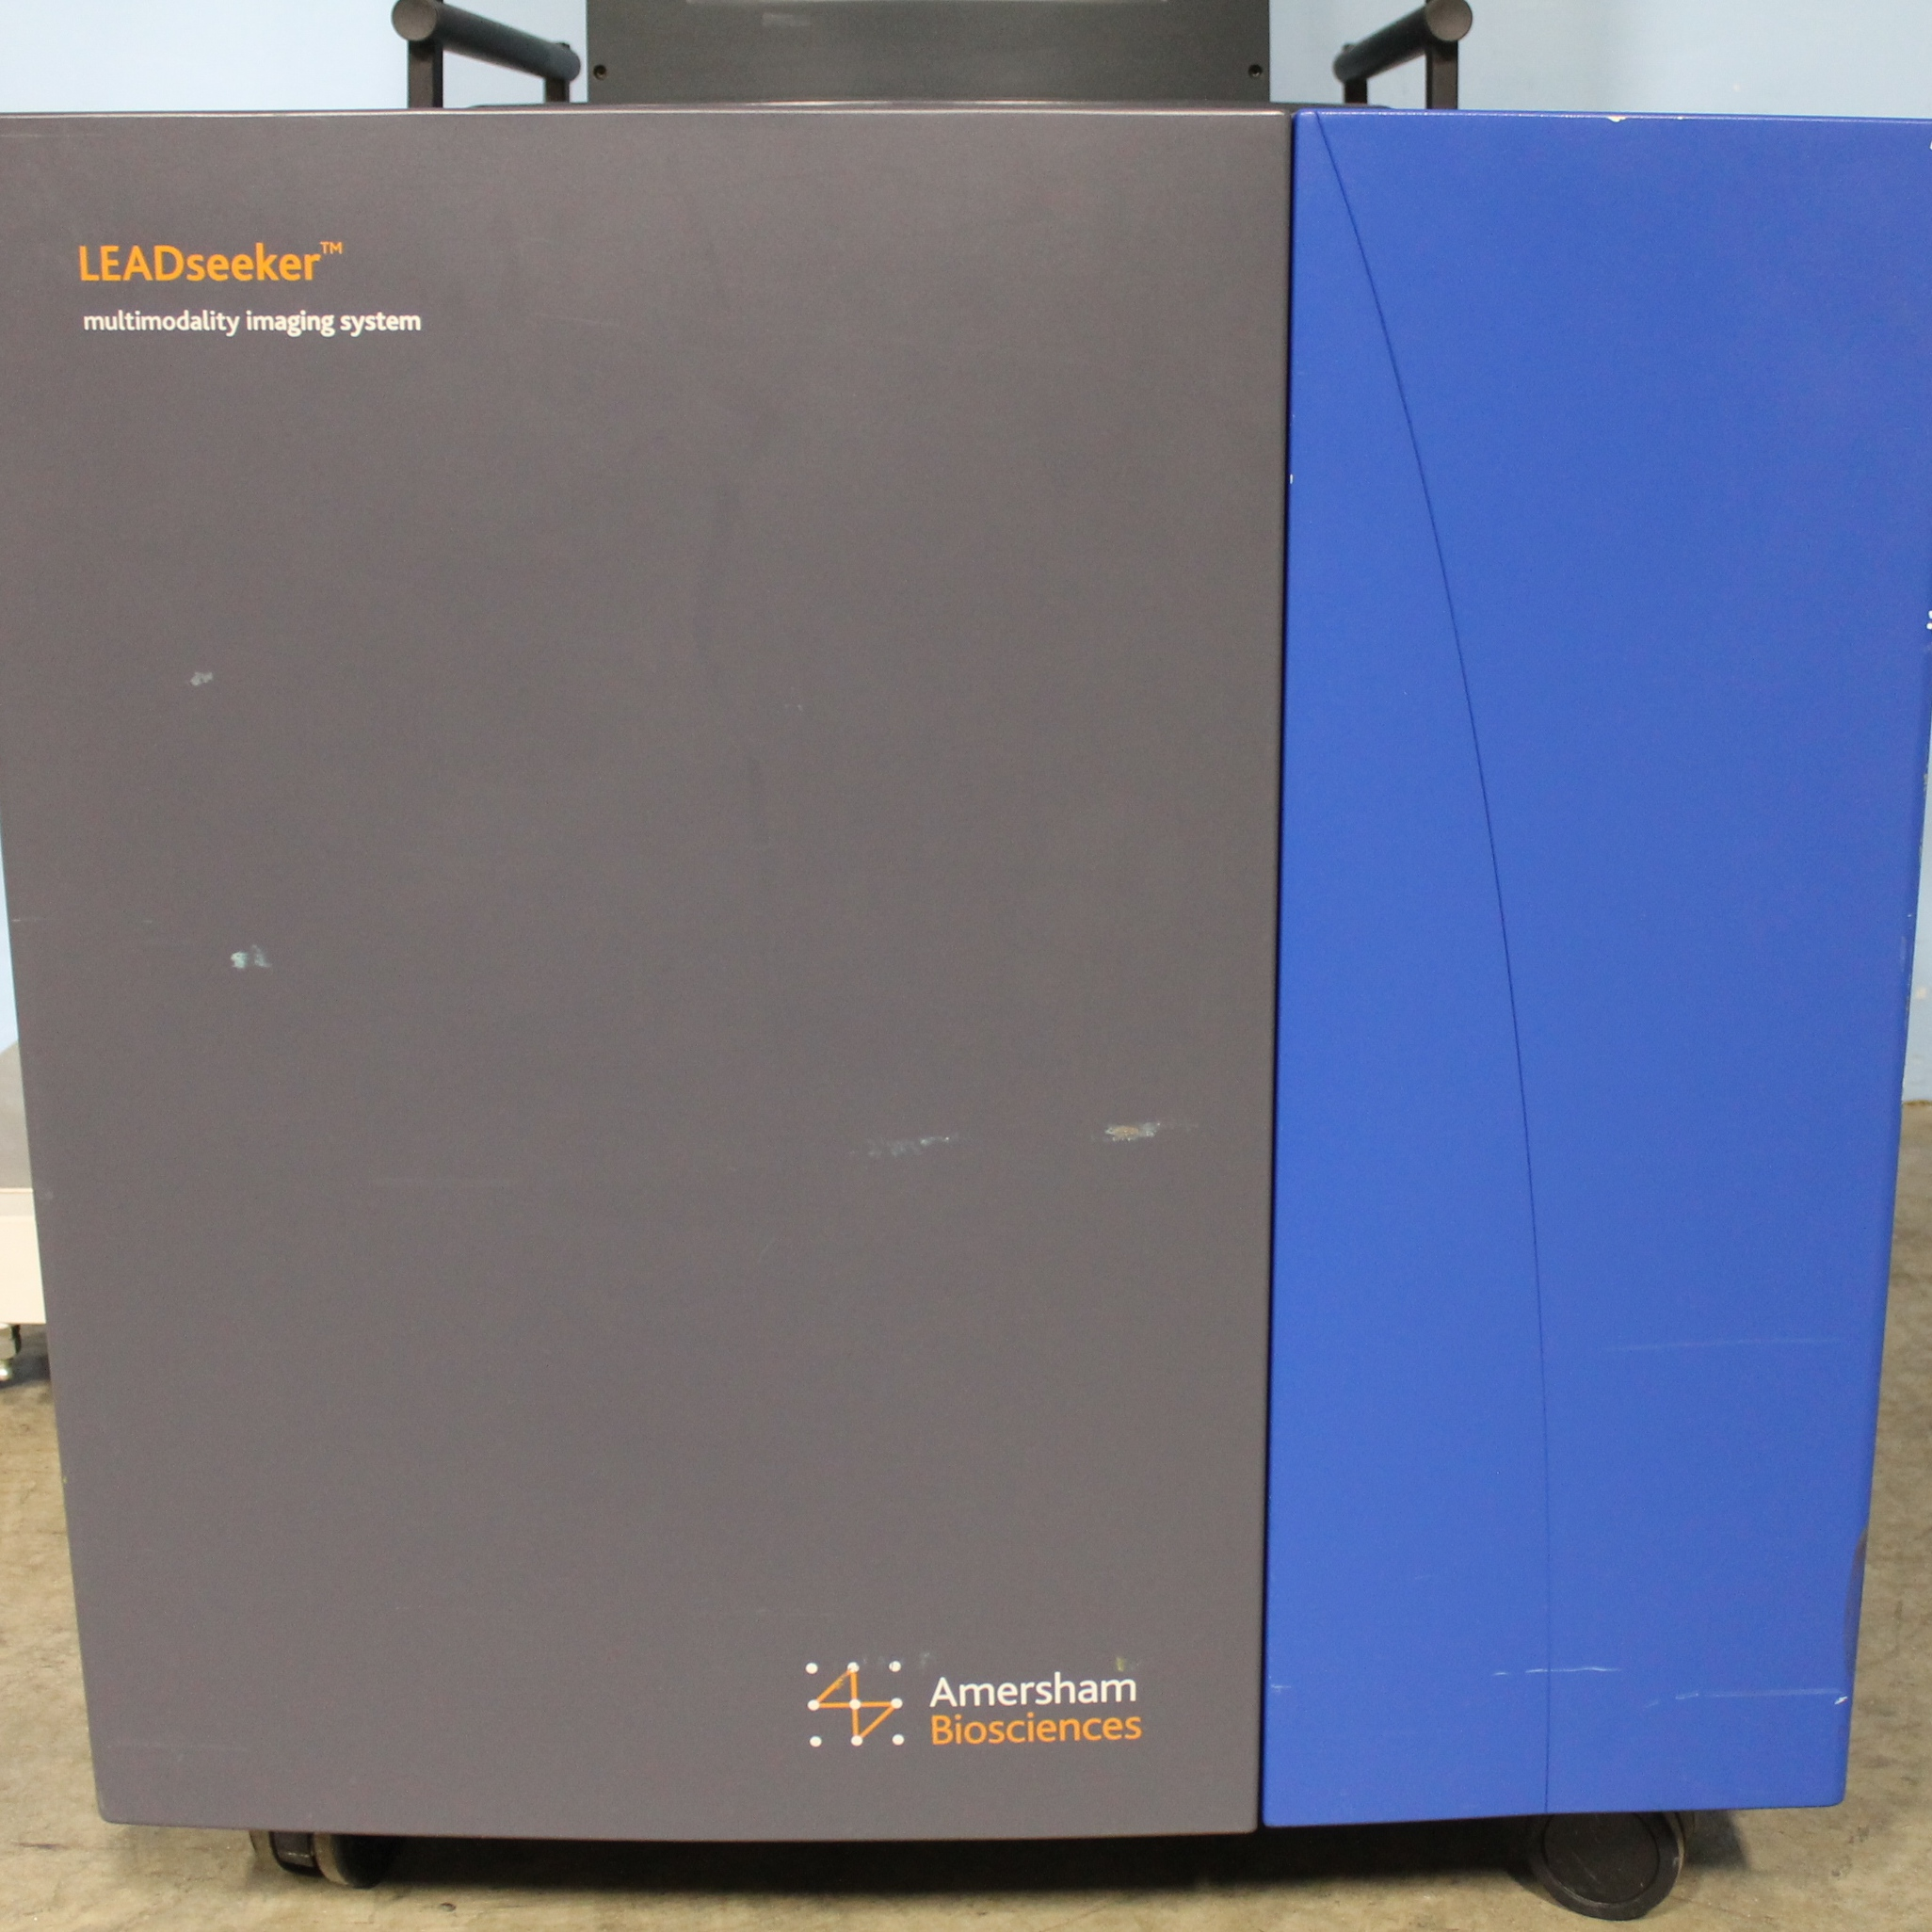 Amersham Biosciences LEADseeker Multimodality Imaging System Image